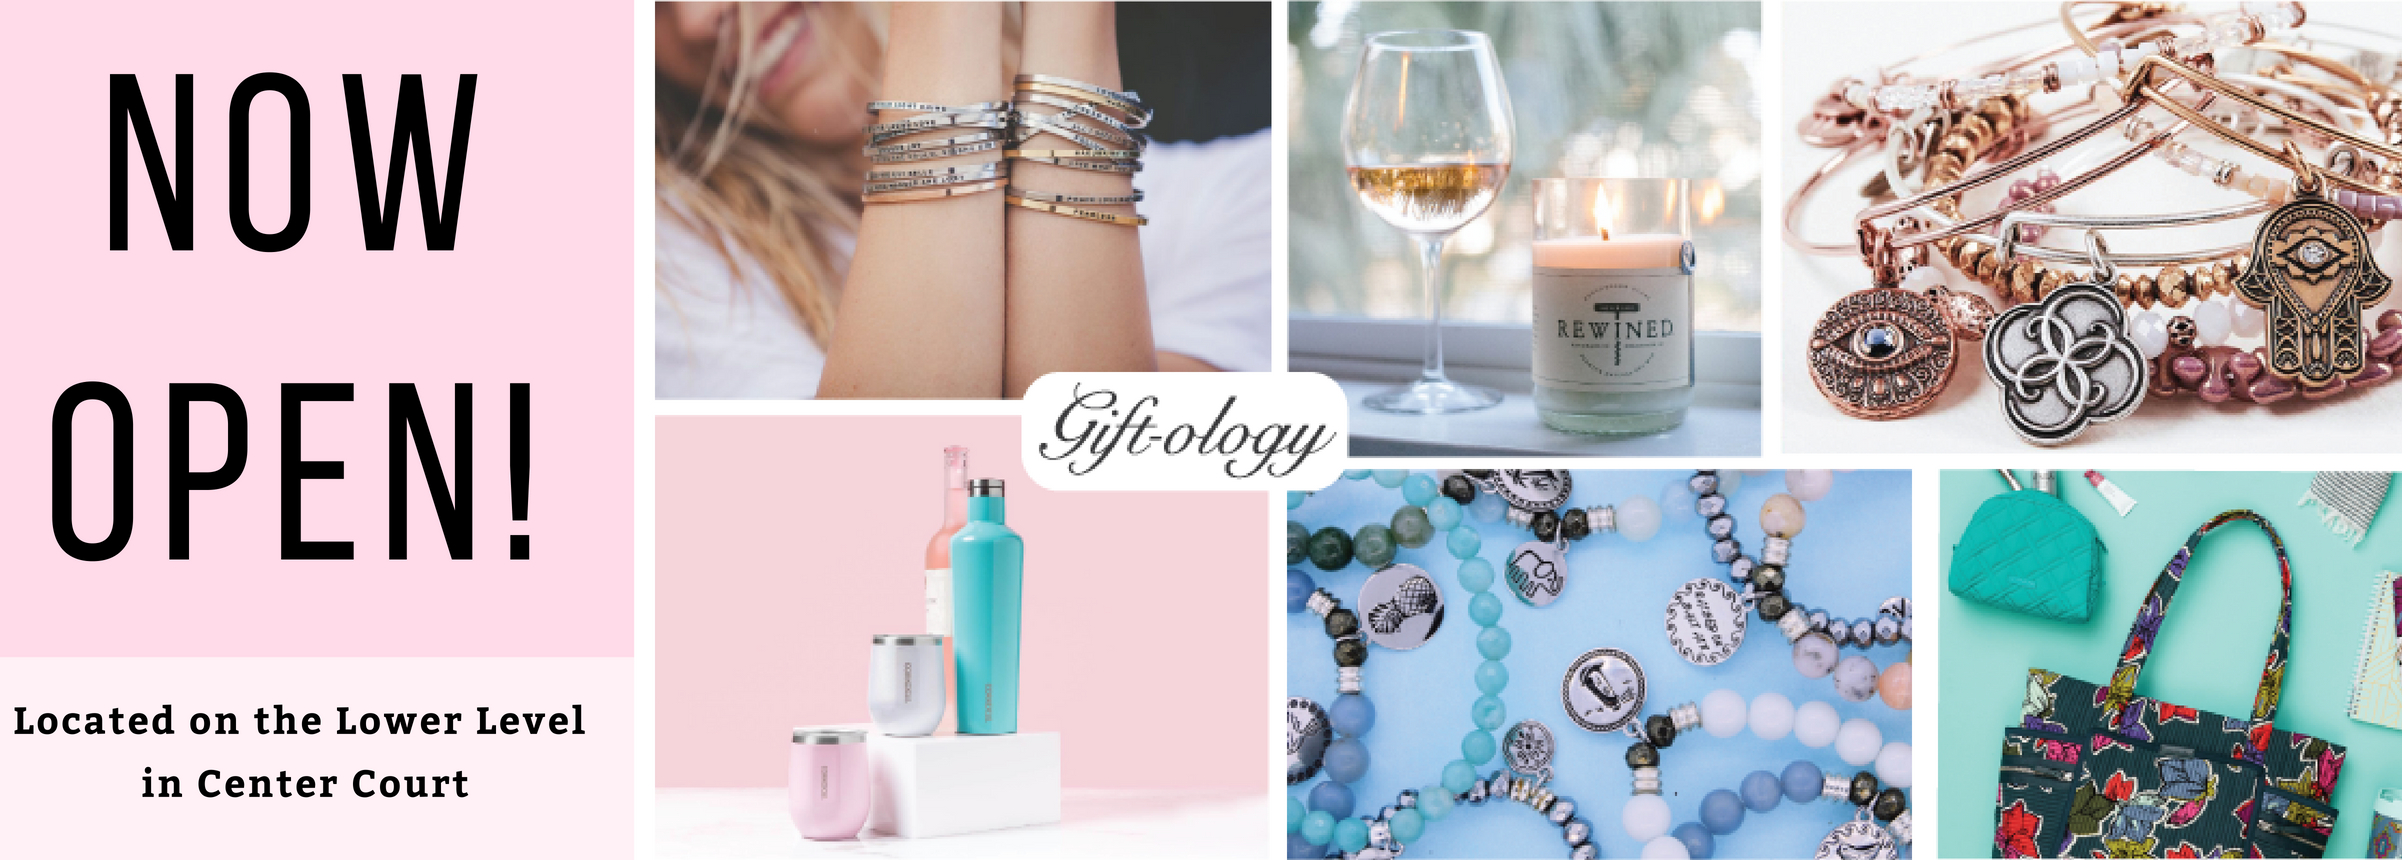 Gift-ology now open